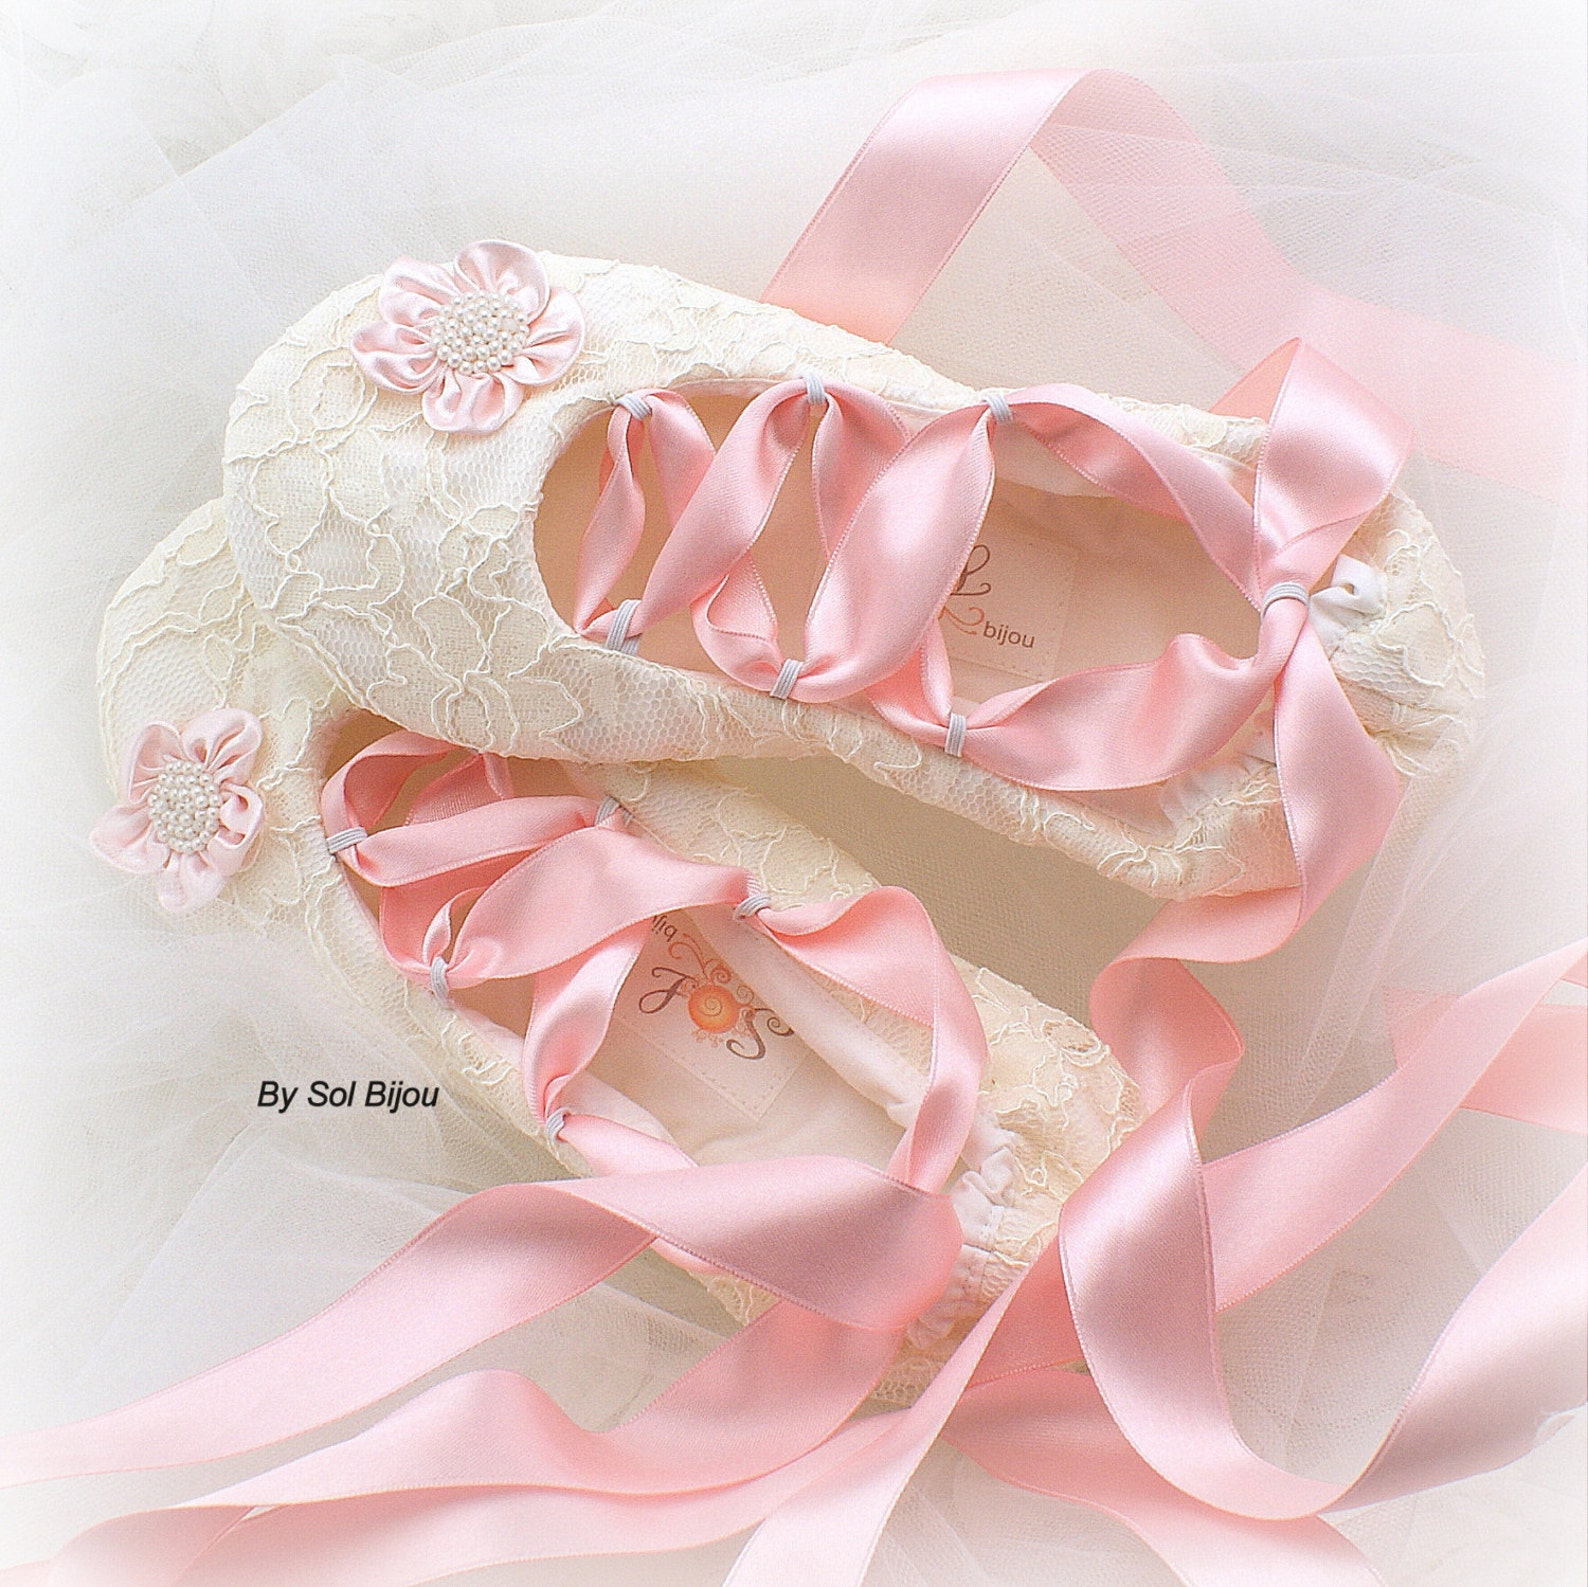 ivory ballet flats, pink ballet shoes, lace bridal shoes, wedding flats, bridal shoes, lace flats, ivory bridal ballet slippers